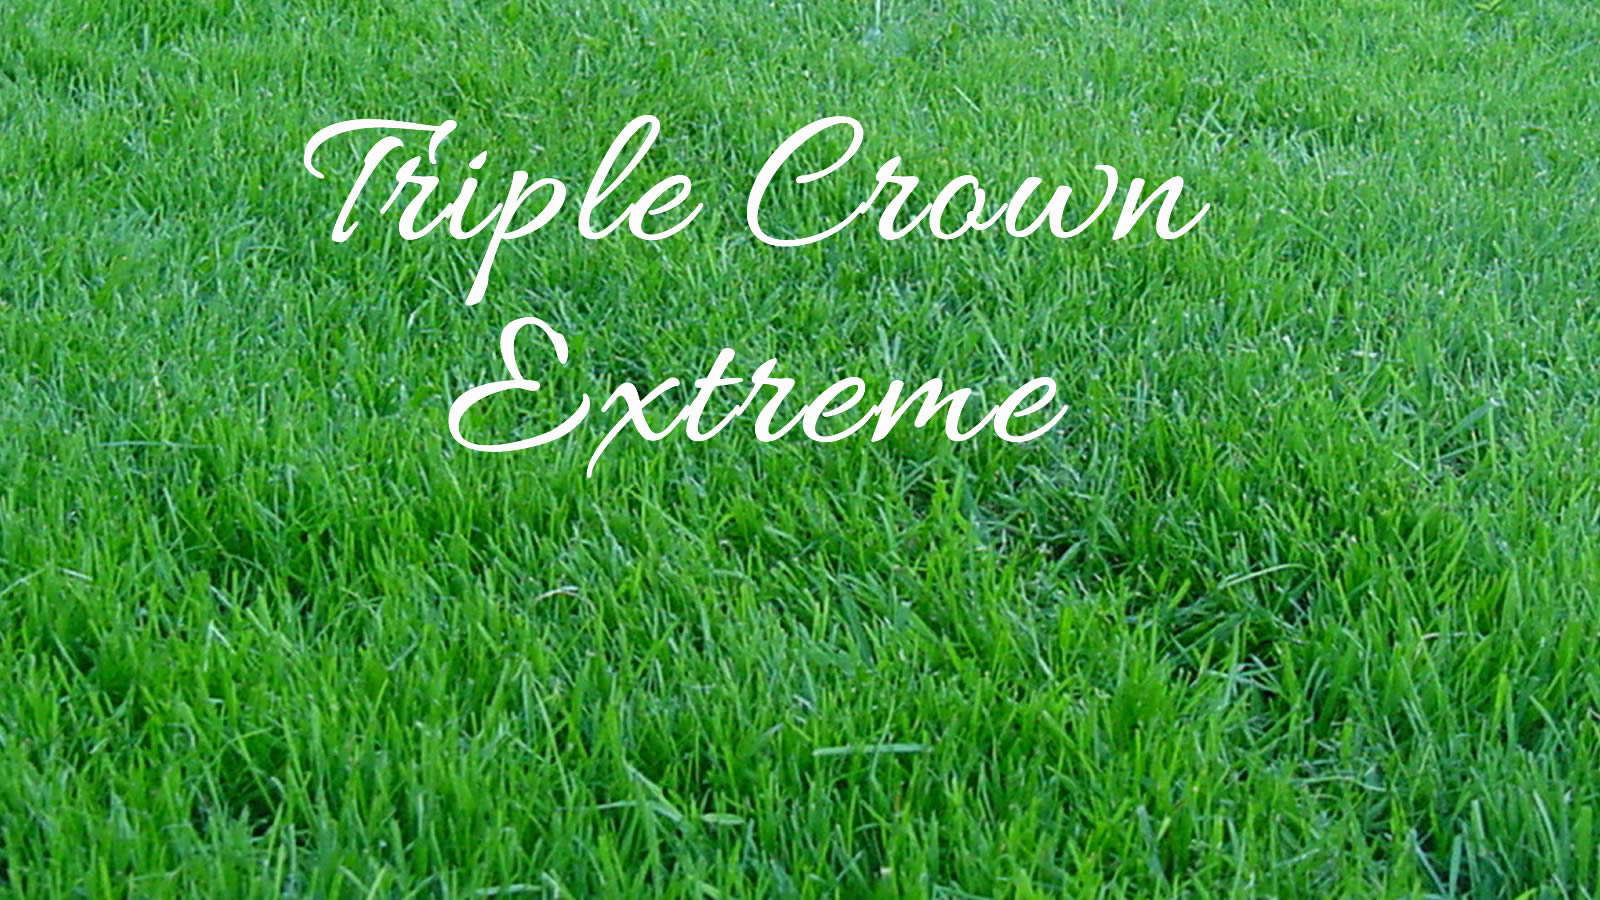 Triple Crown Extreme Turf